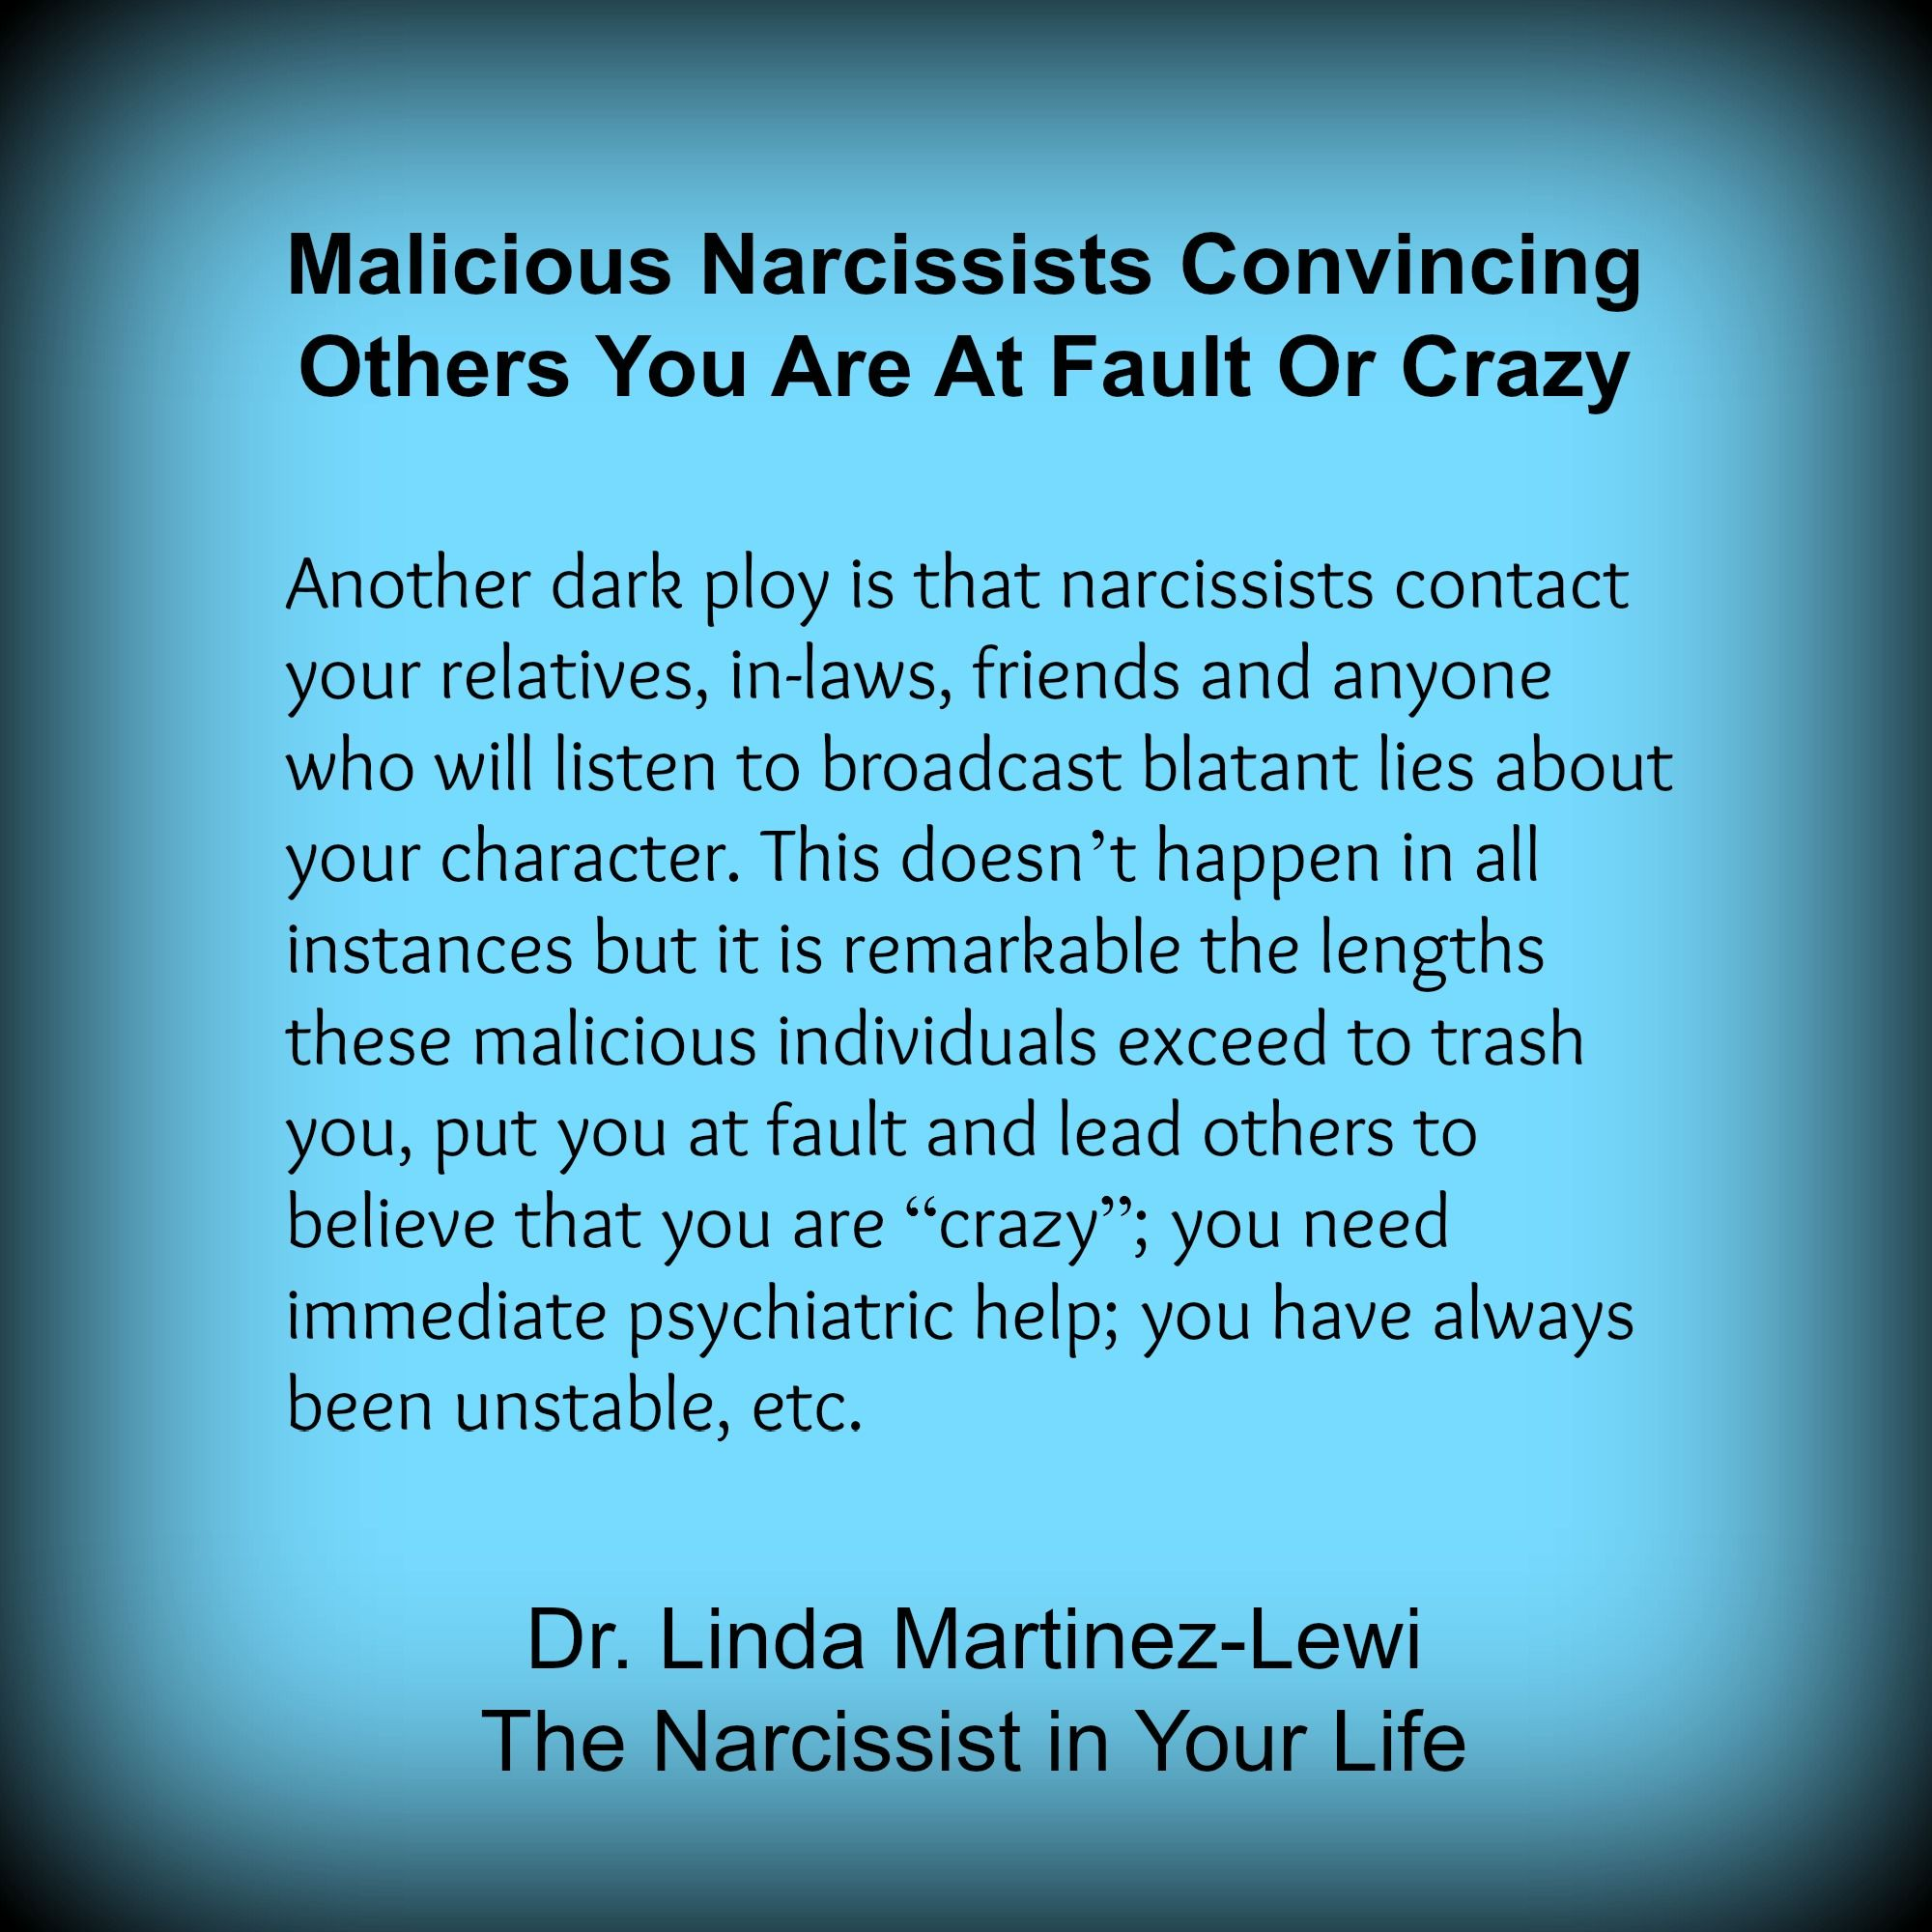 Dr. Linda Martinez-Lewi, Malicious Narcissists Convincing Others You Are At Fault Or Crazy on The Narcissist in Your Life